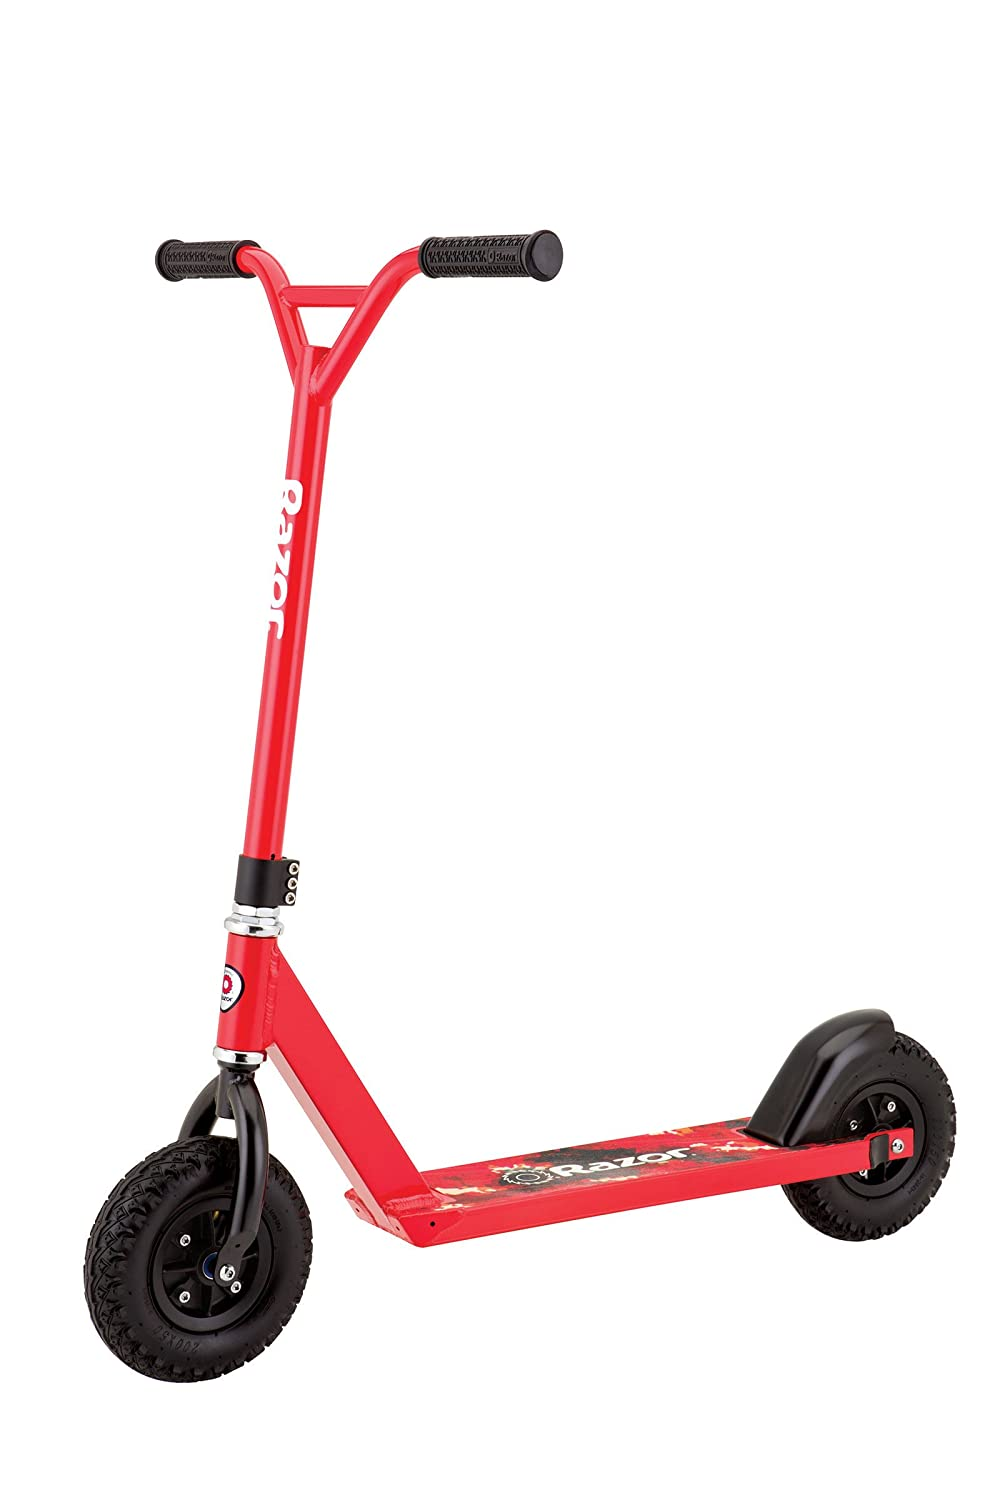 Razor Pro RDS Dirt Scooter, Red 13018158